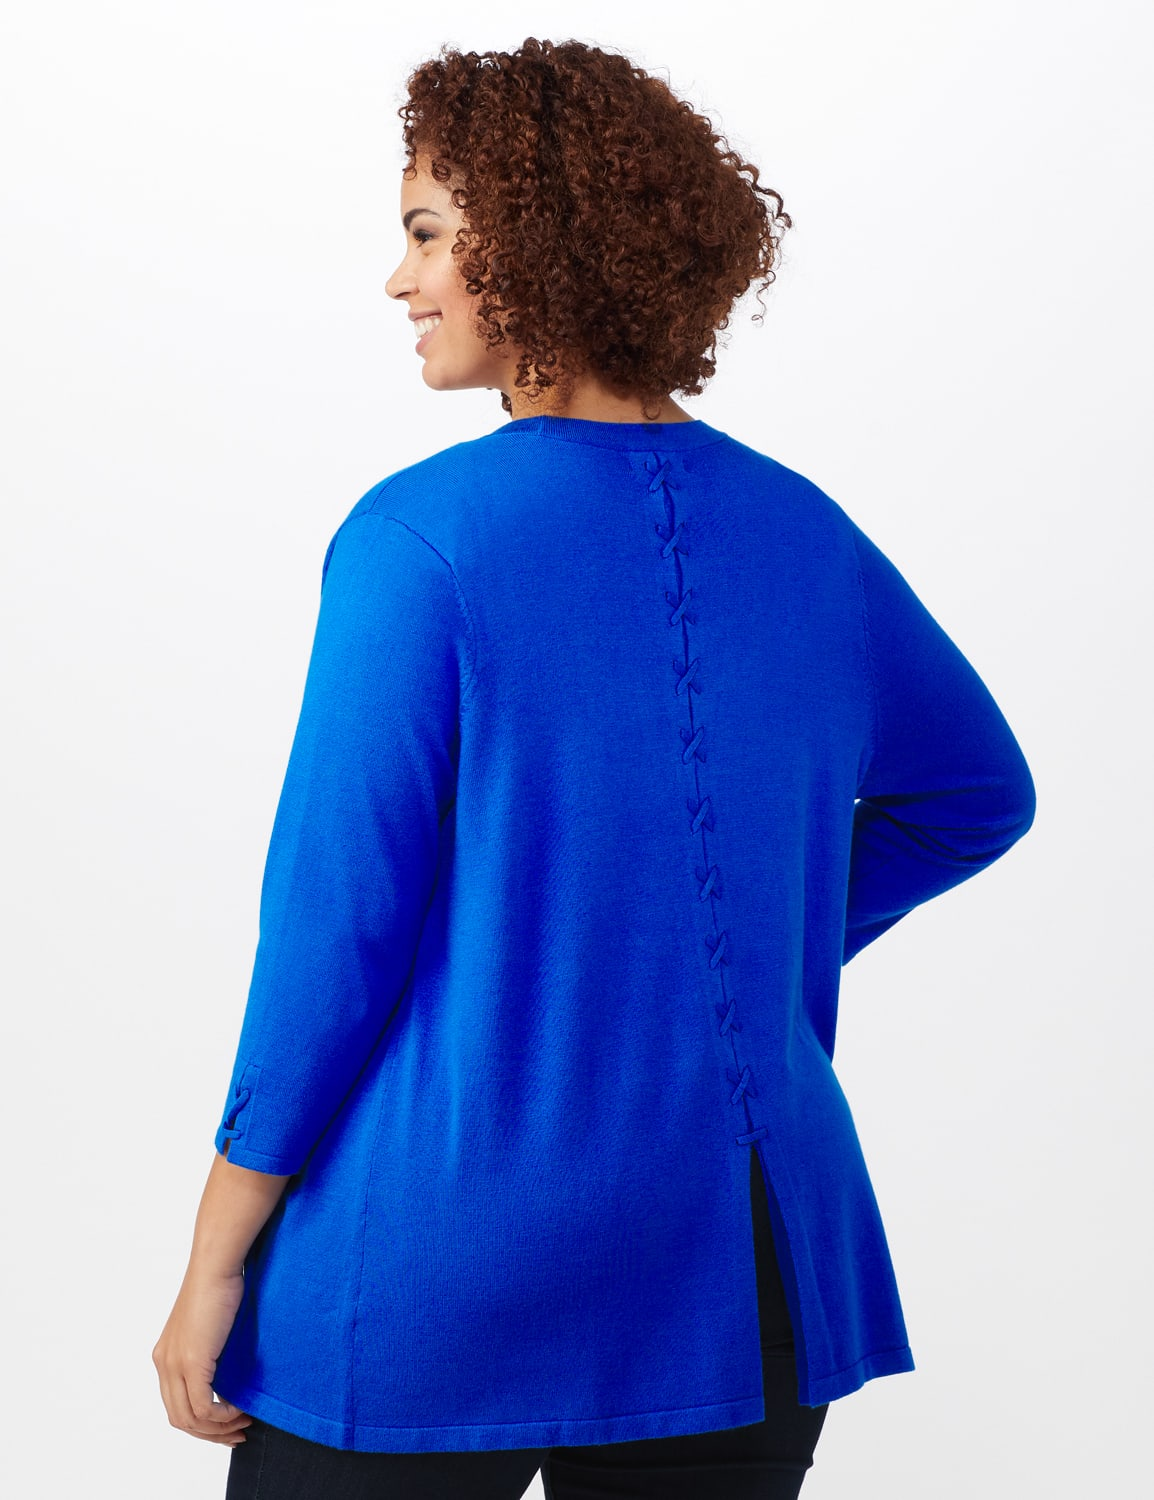 Roz & Ali Lace-Up Back Cardigan - Plus - Masquerade Blue - Back